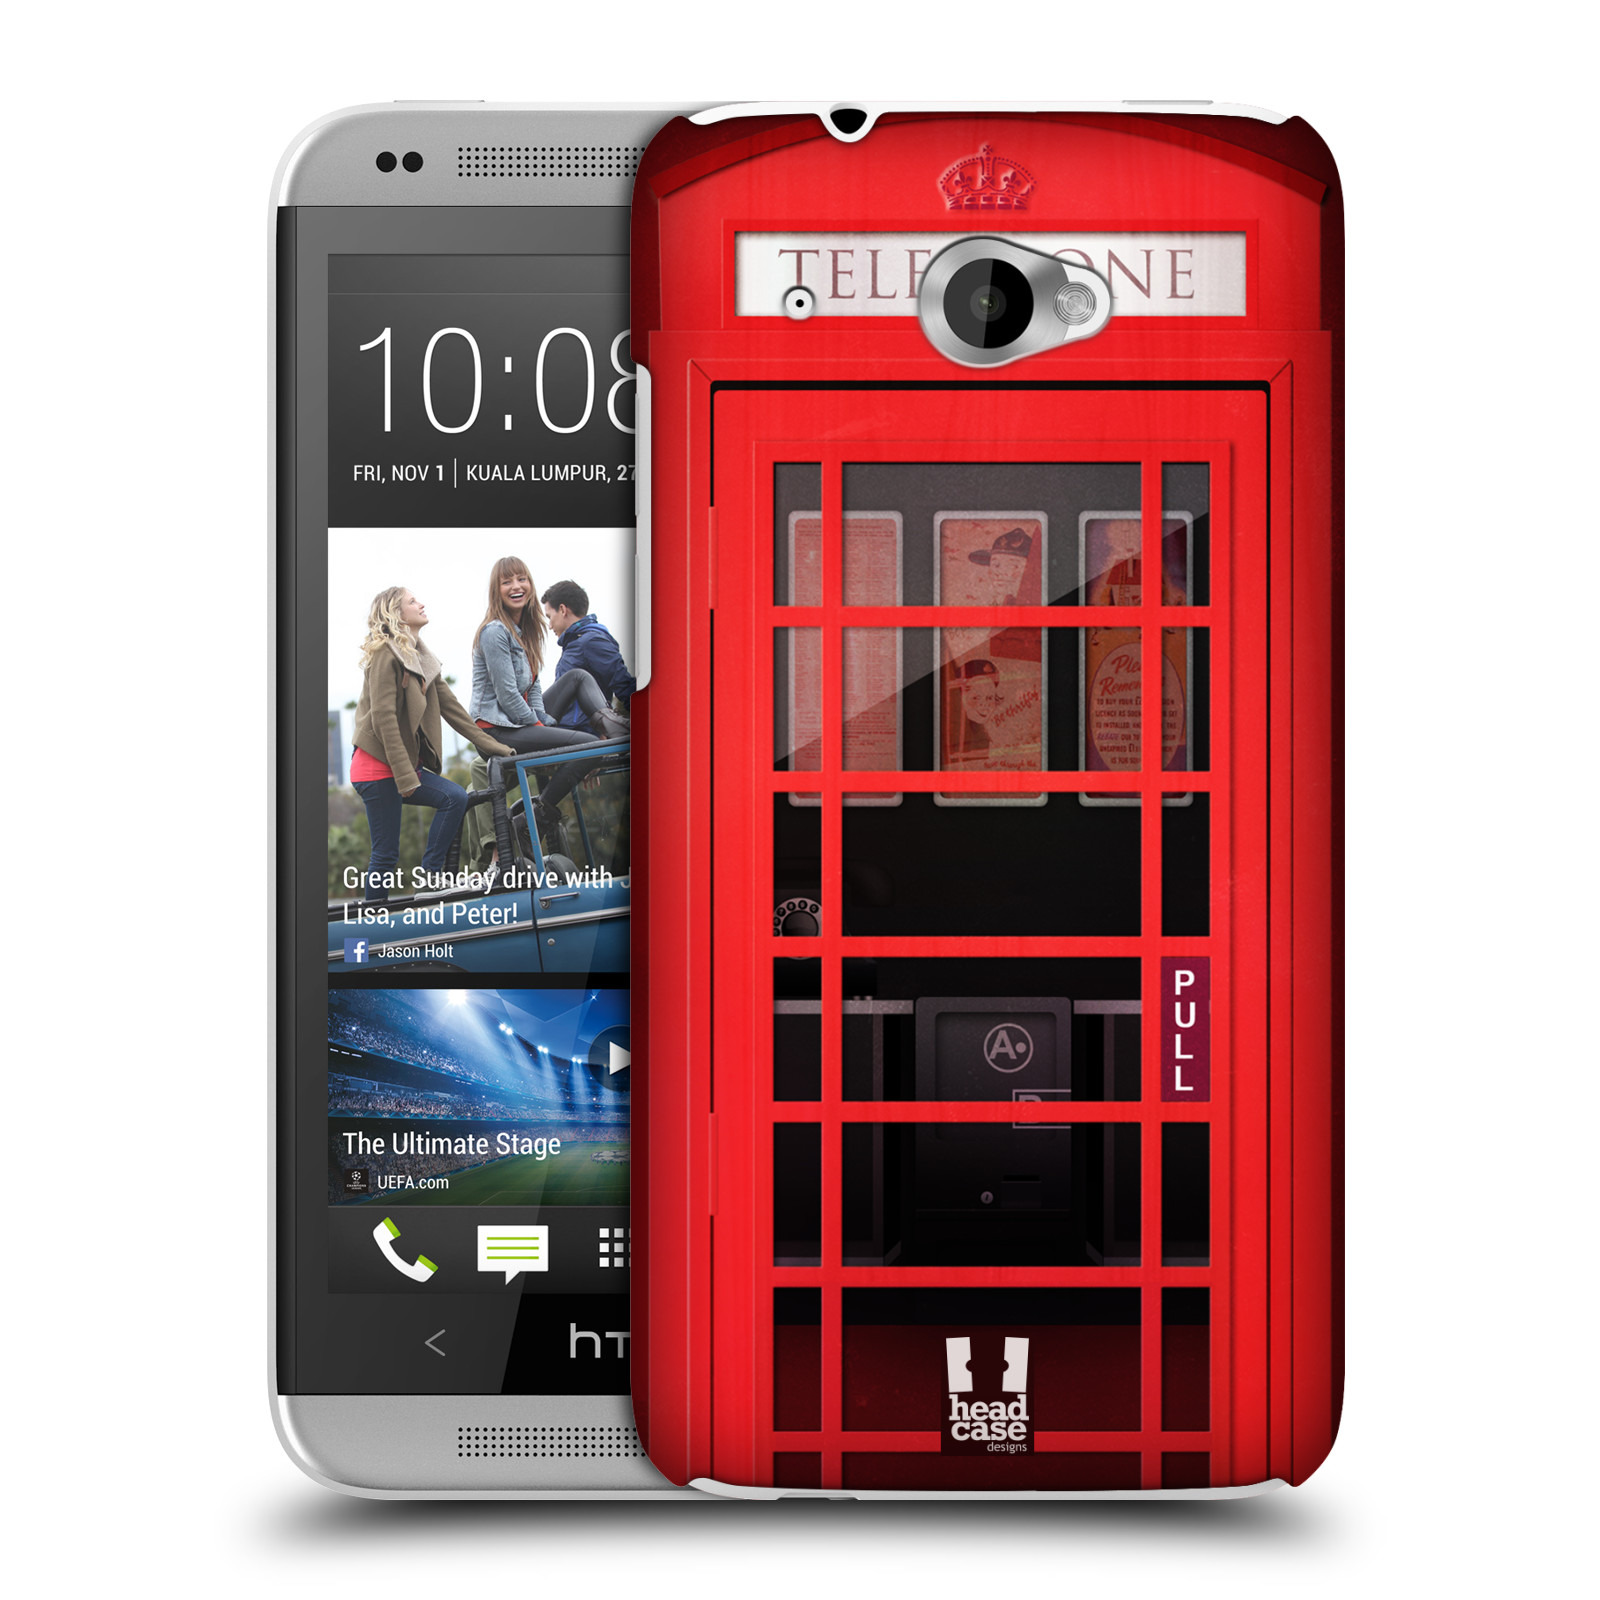 HEAD CASE DESIGNS TELEPHONE BOX CASE COVER FOR HTC DESIRE 601 LTE